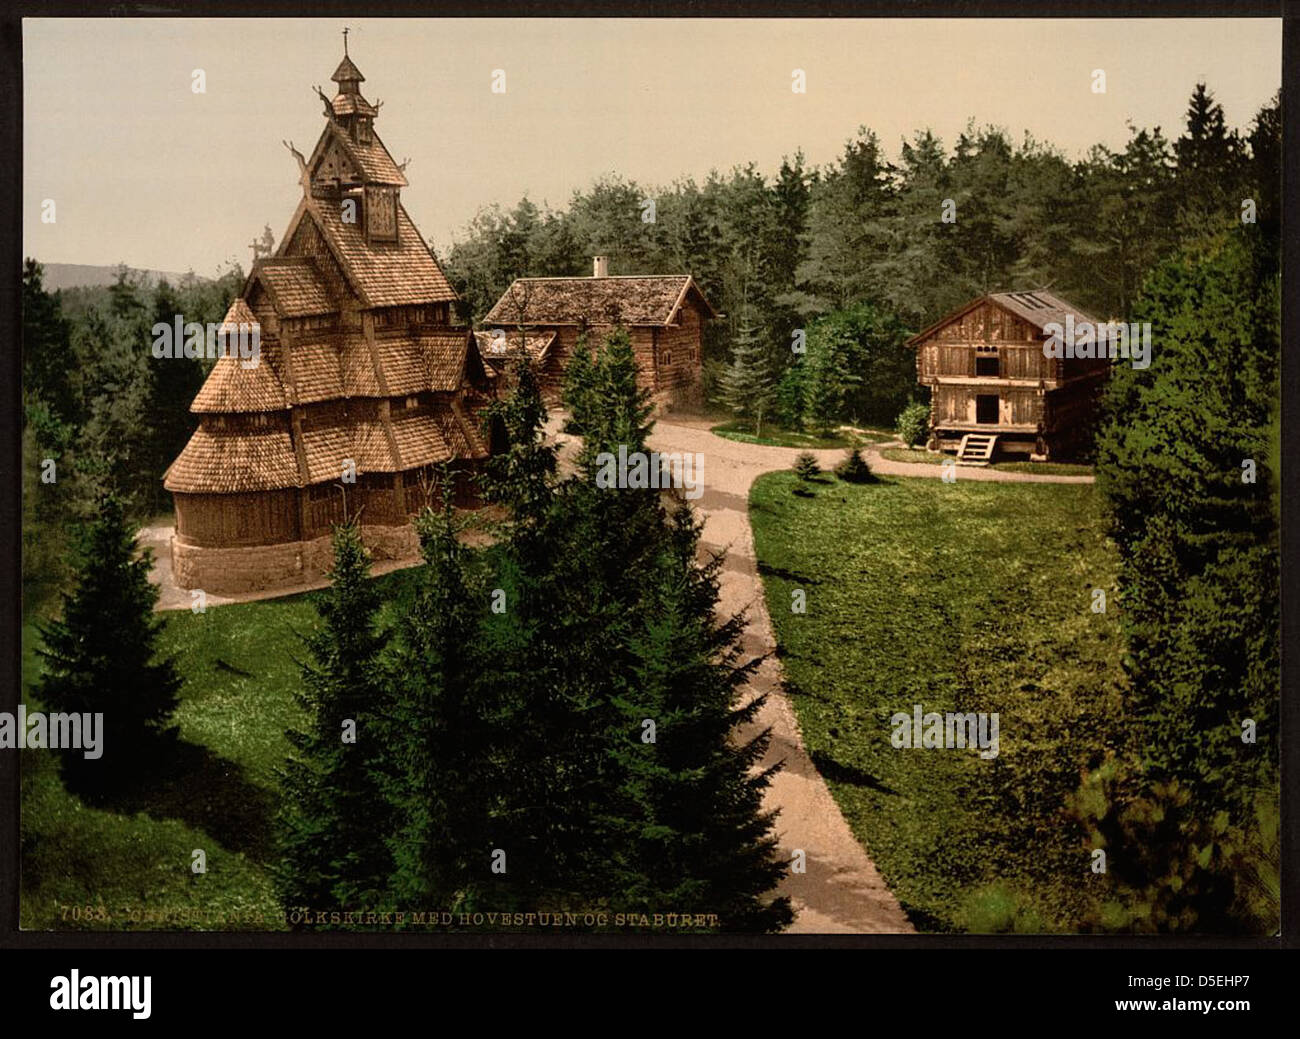 [Gols Church, with Hovenstuen and Staburet, Christiania, Norway] (LOC) - Stock Image